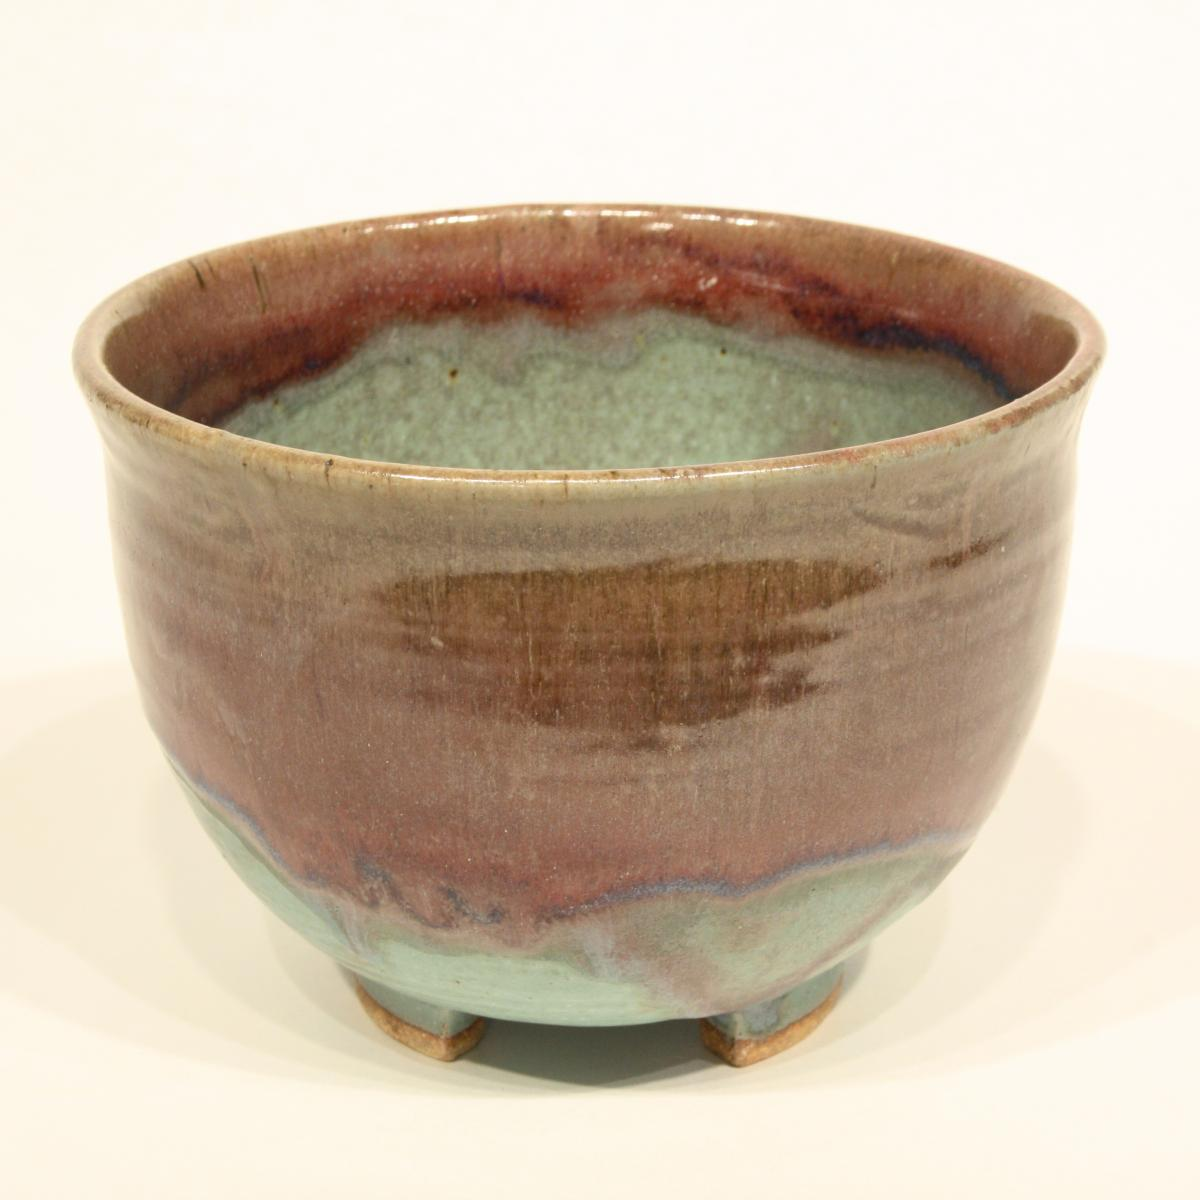 Elegant ceramic bowl with green and brown colors merging together.